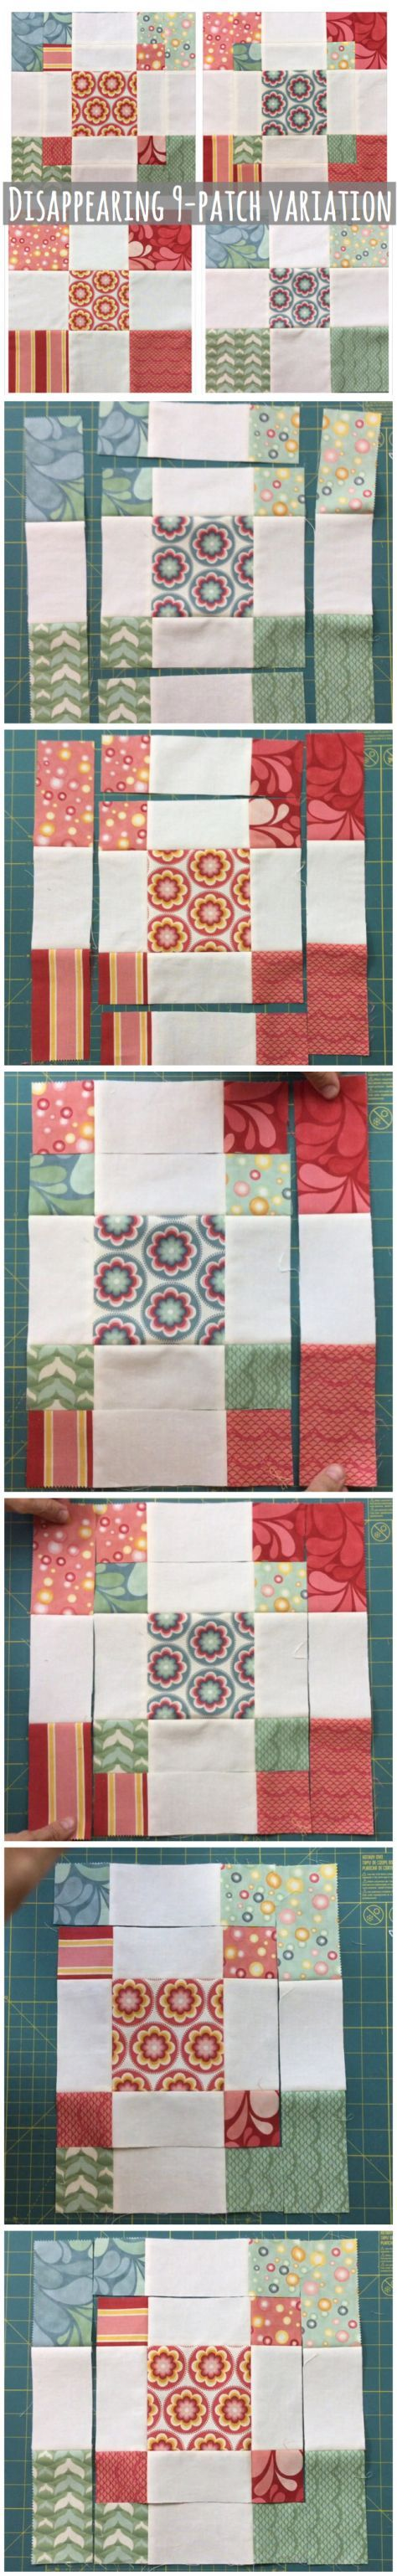 Variation on a disappearing 9-patch block and quilt tutorial                                                                                                                                                                                 More